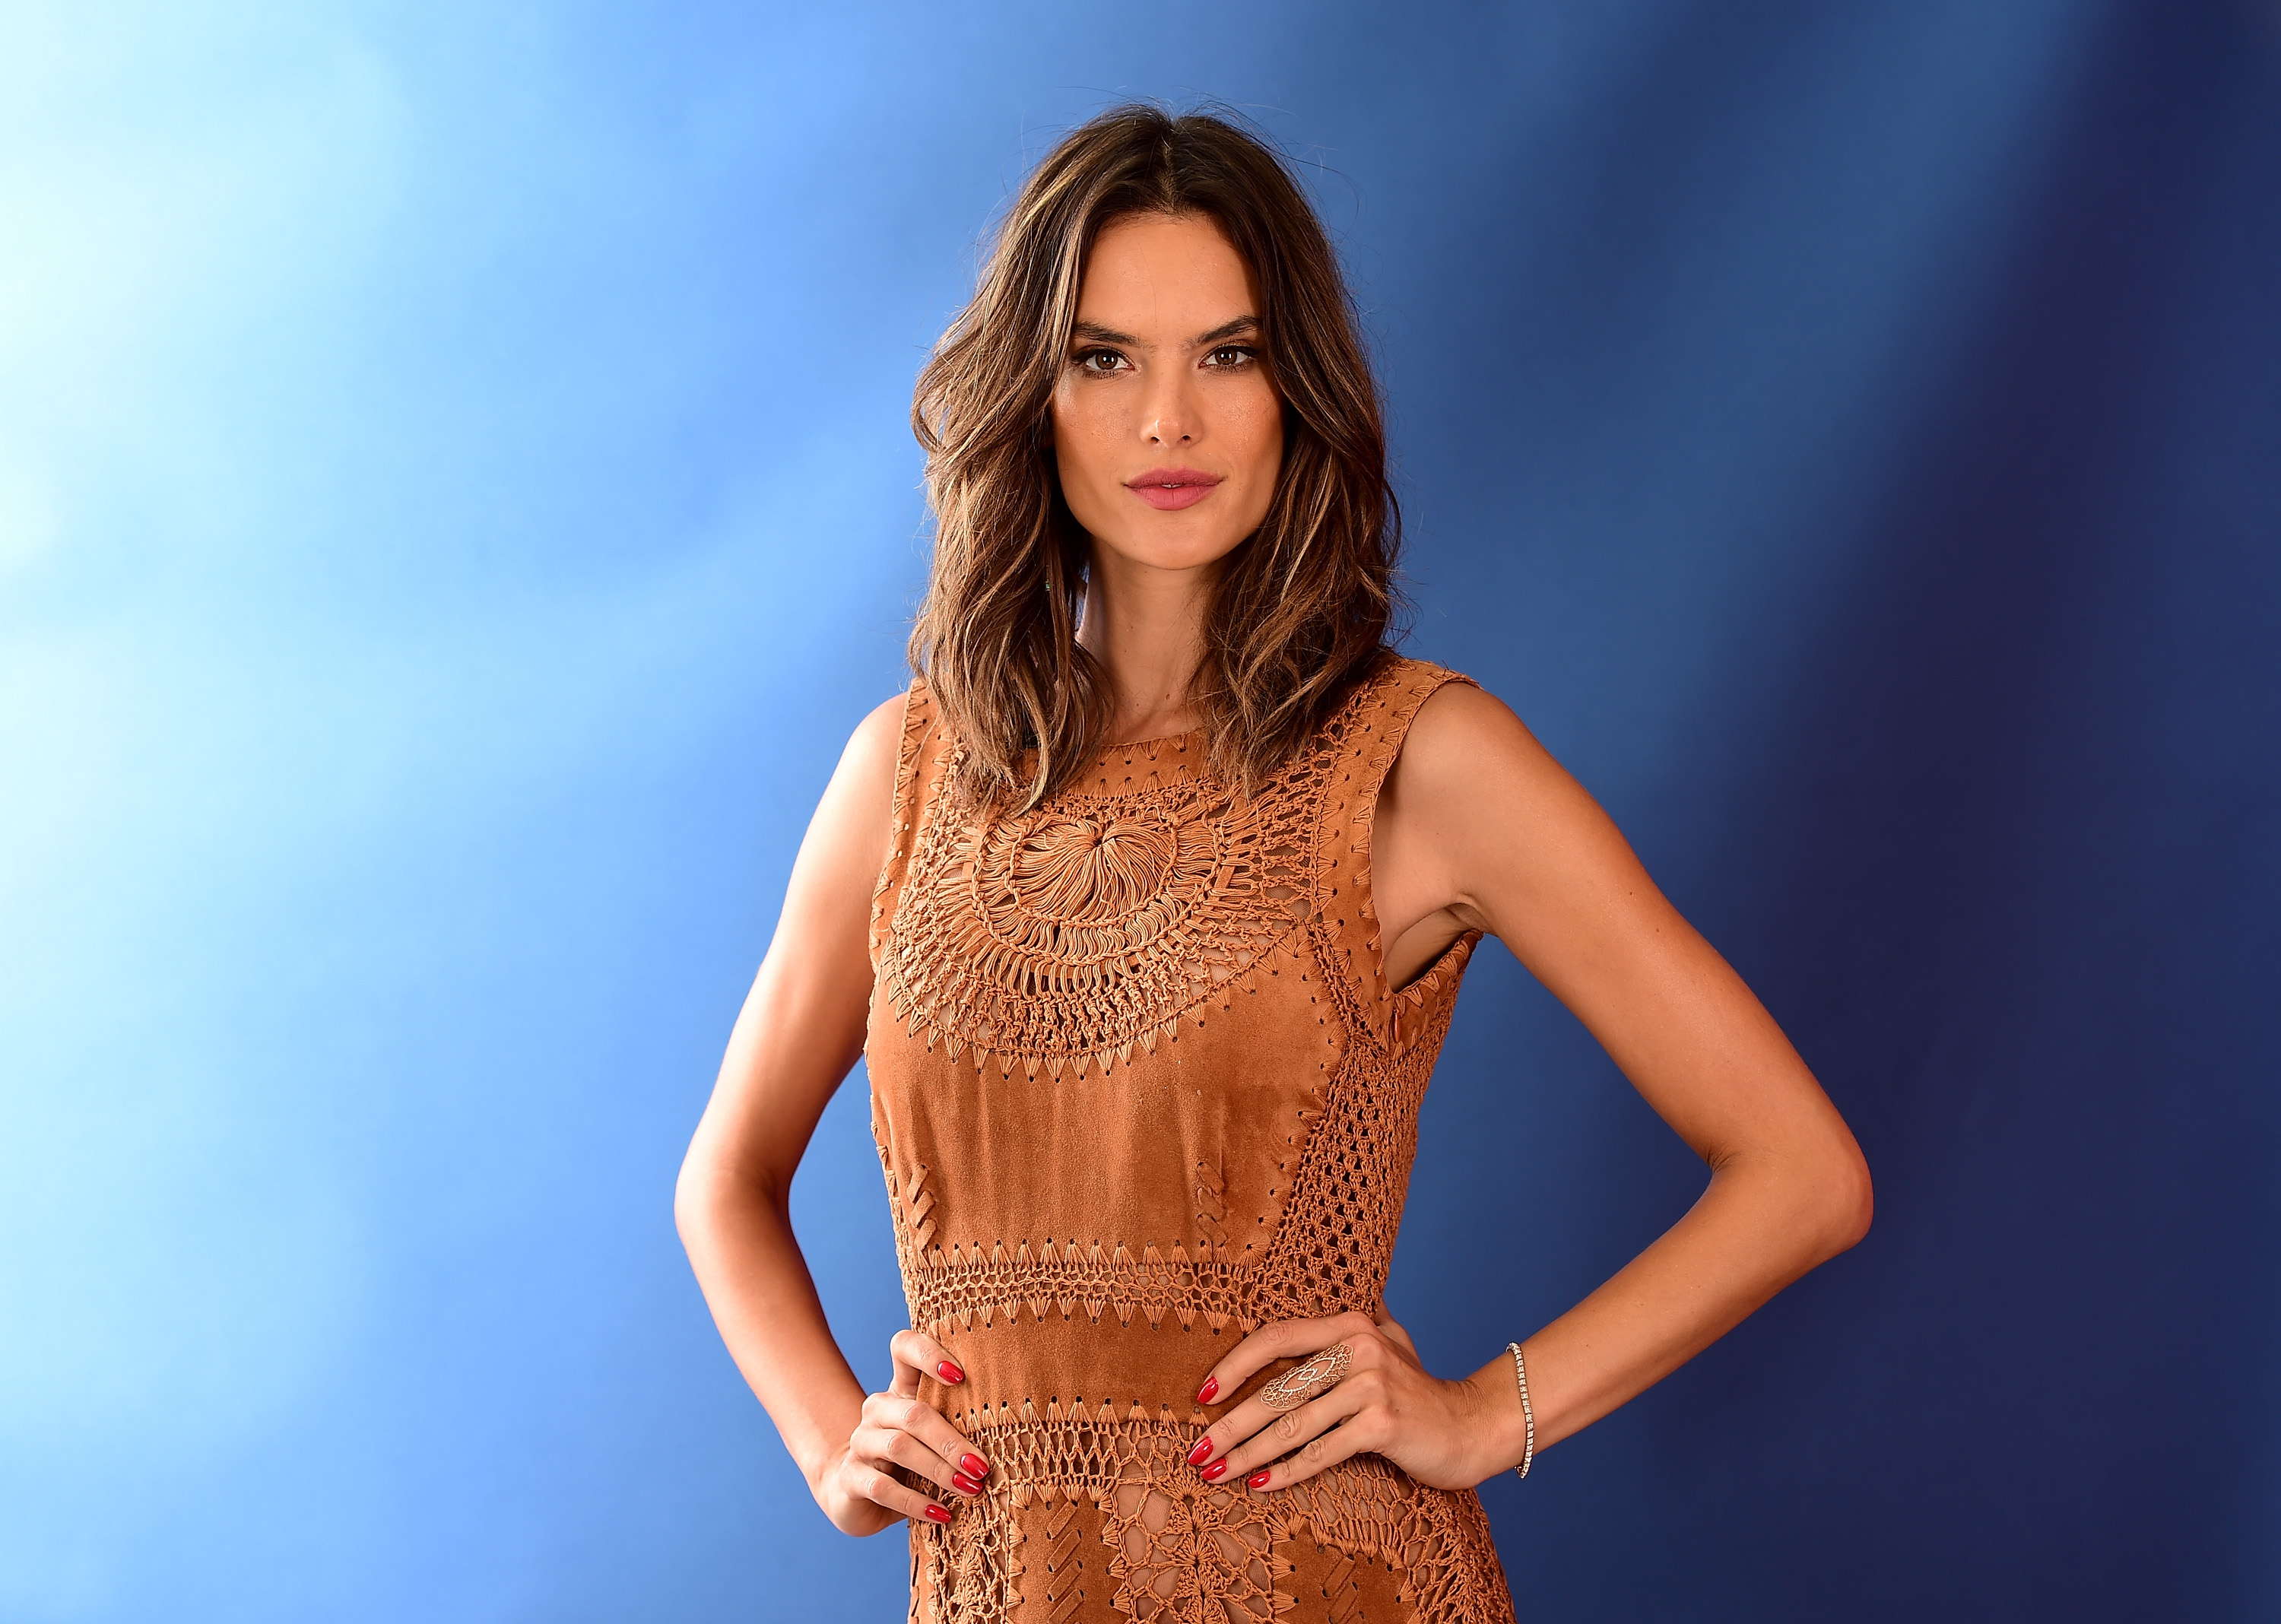 RIO DE JANEIRO, BRAZIL - AUGUST 08: (BROADCAST - OUT) Model Alessandra Ambrósio poses for a photo on the NBC Today show set on Copacabana Beach on August 8, 2016 in Rio de Janeiro, Brazil. (Photo by Harry How/Getty Images)